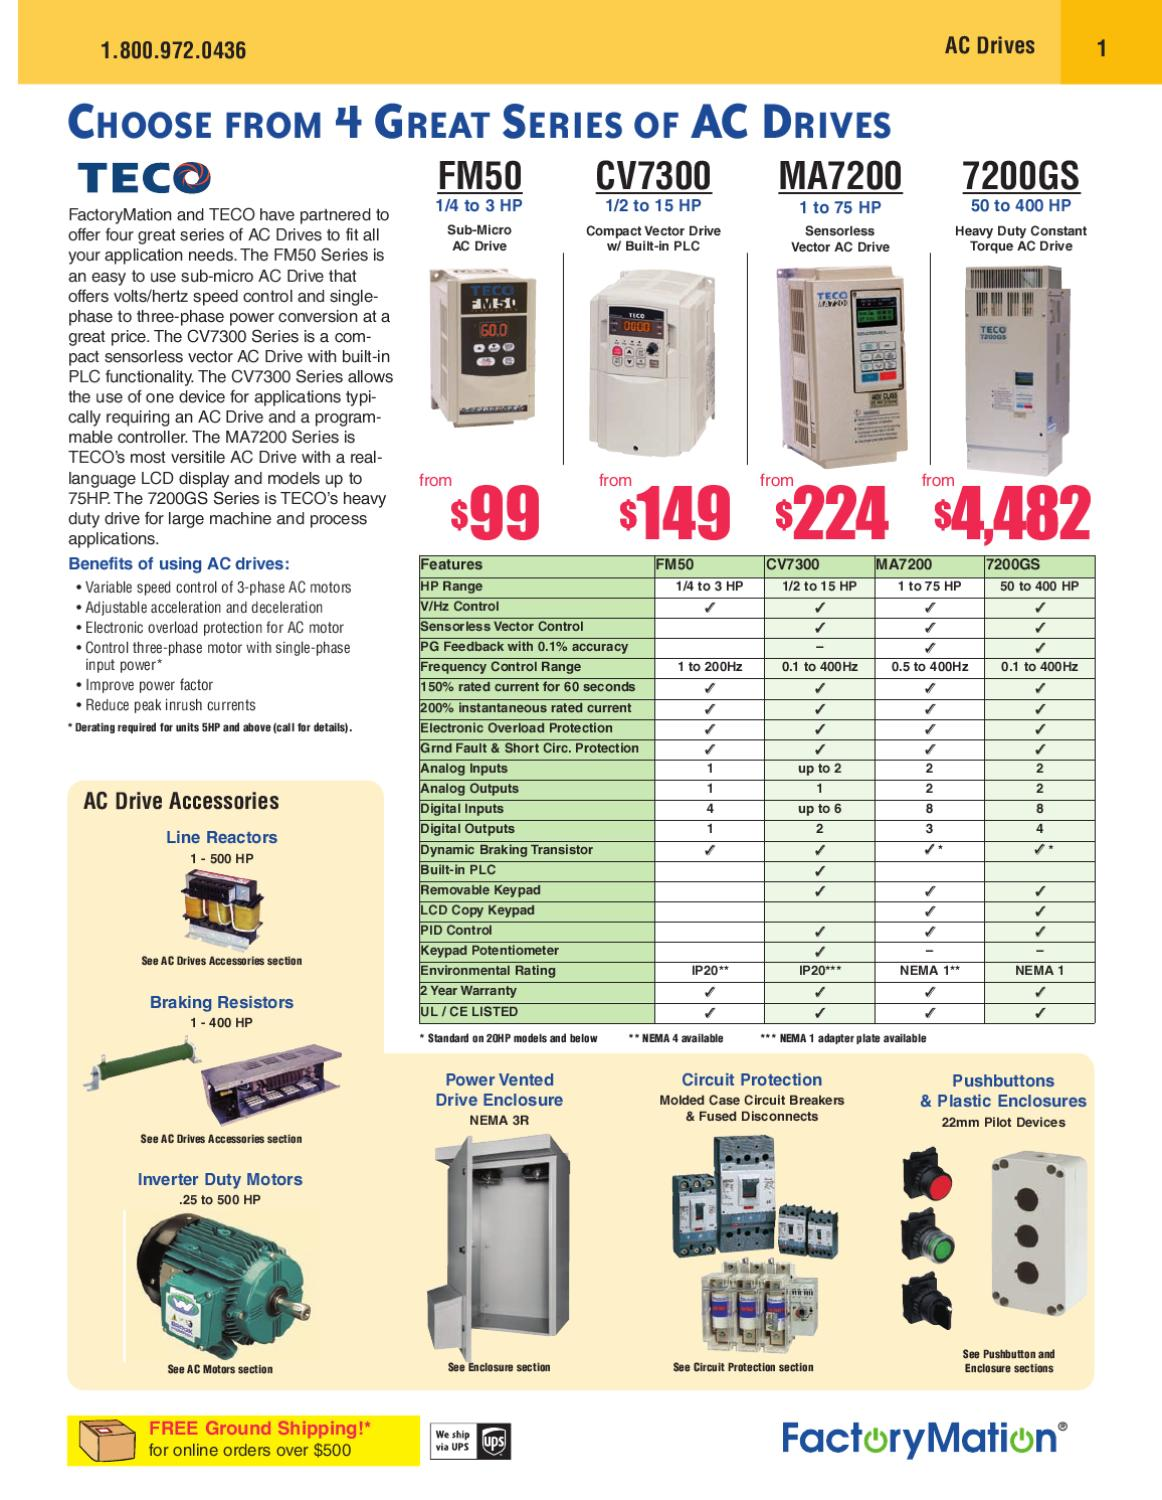 Factorymation Catalog April 2010 By Issuu Wiring Diagram Schematics For The 18500 To 36000 Btu Ac Unit With 2